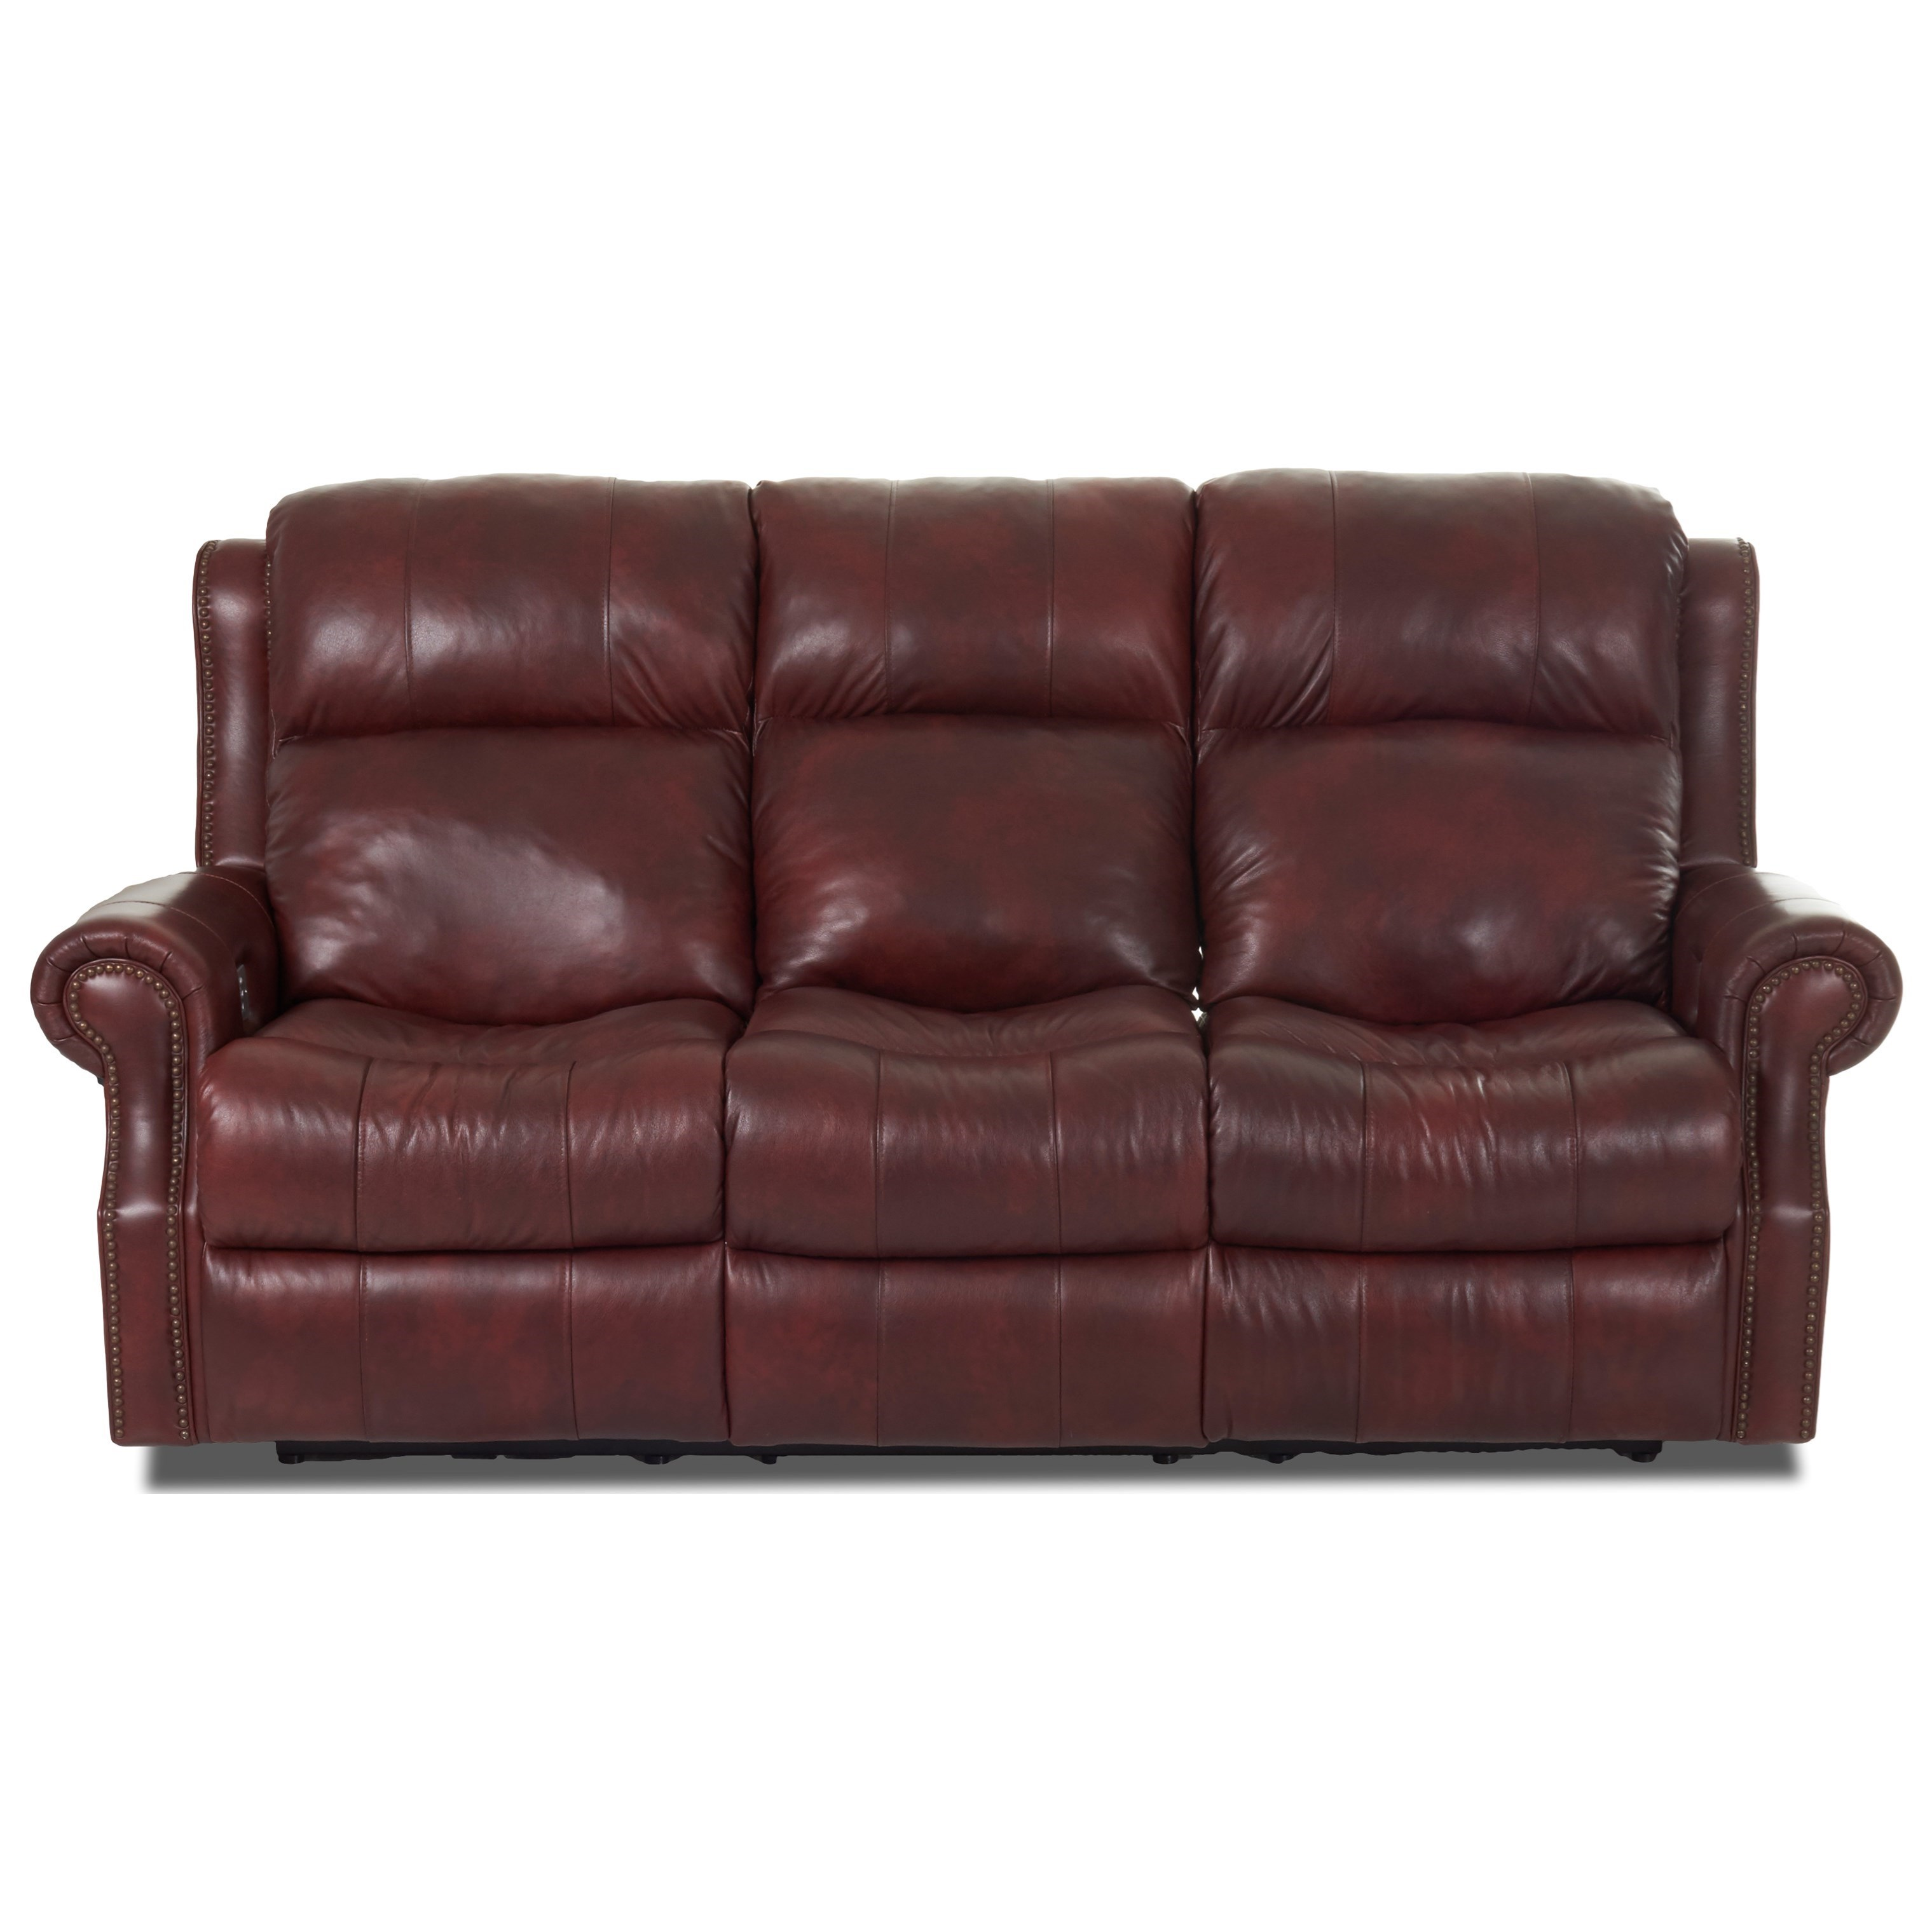 Ashley Furniture Horseheads Ny: Klaussner Vivio Traditional Power Reclining Sofa With